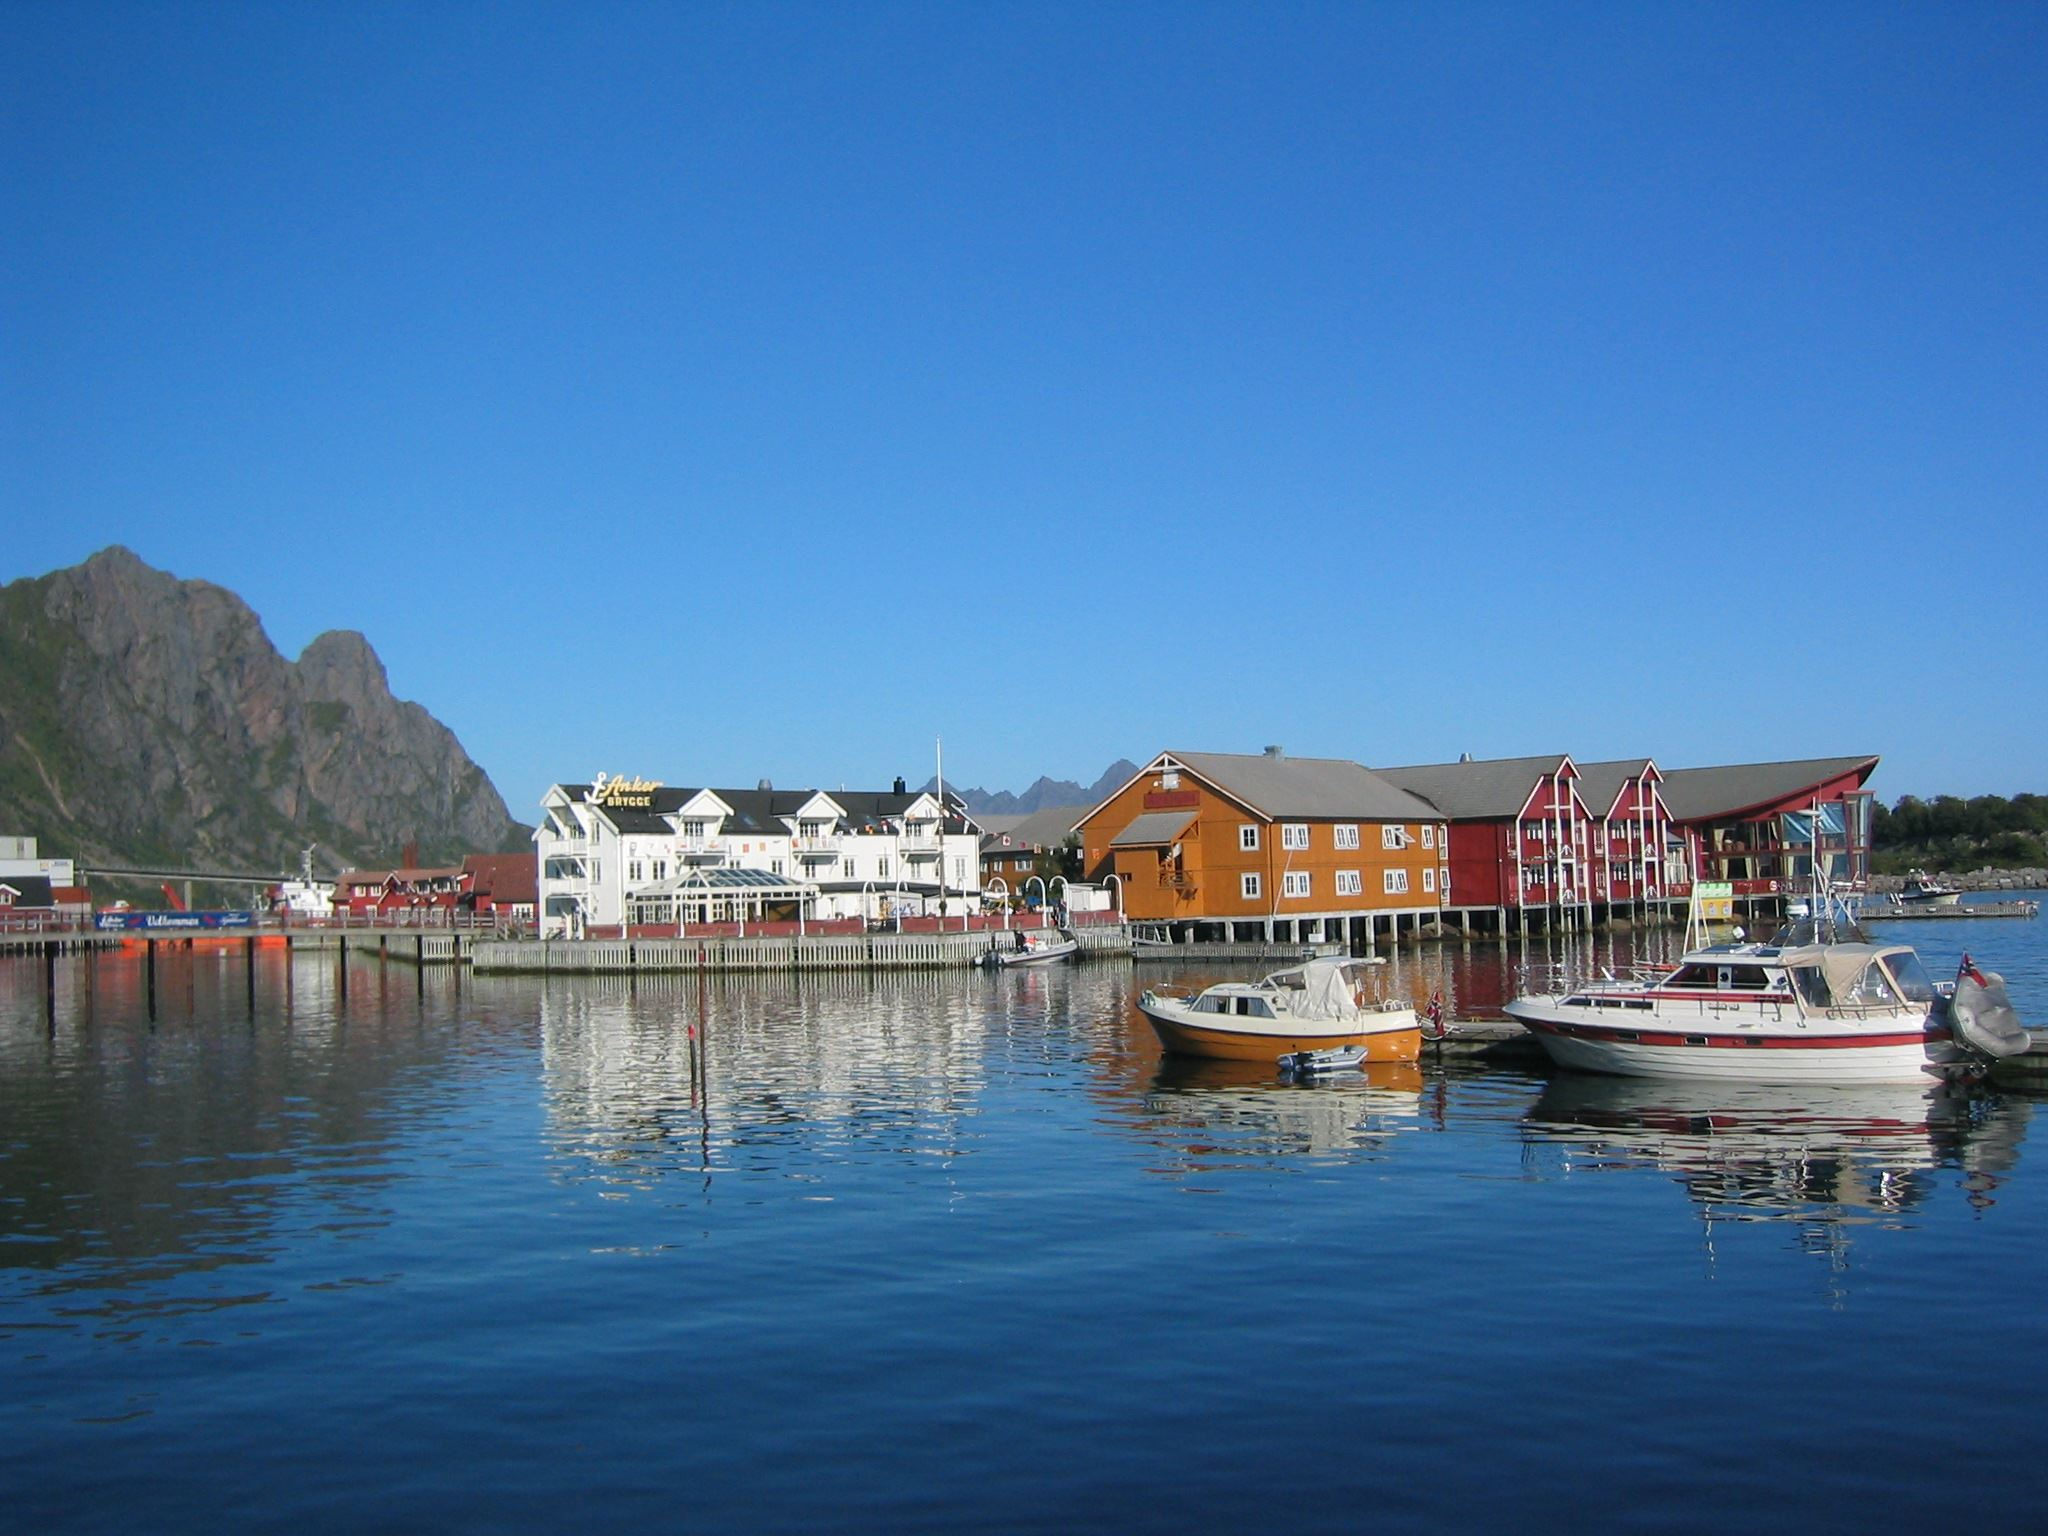 LIAF 2015 - Lofoten International Art Festival